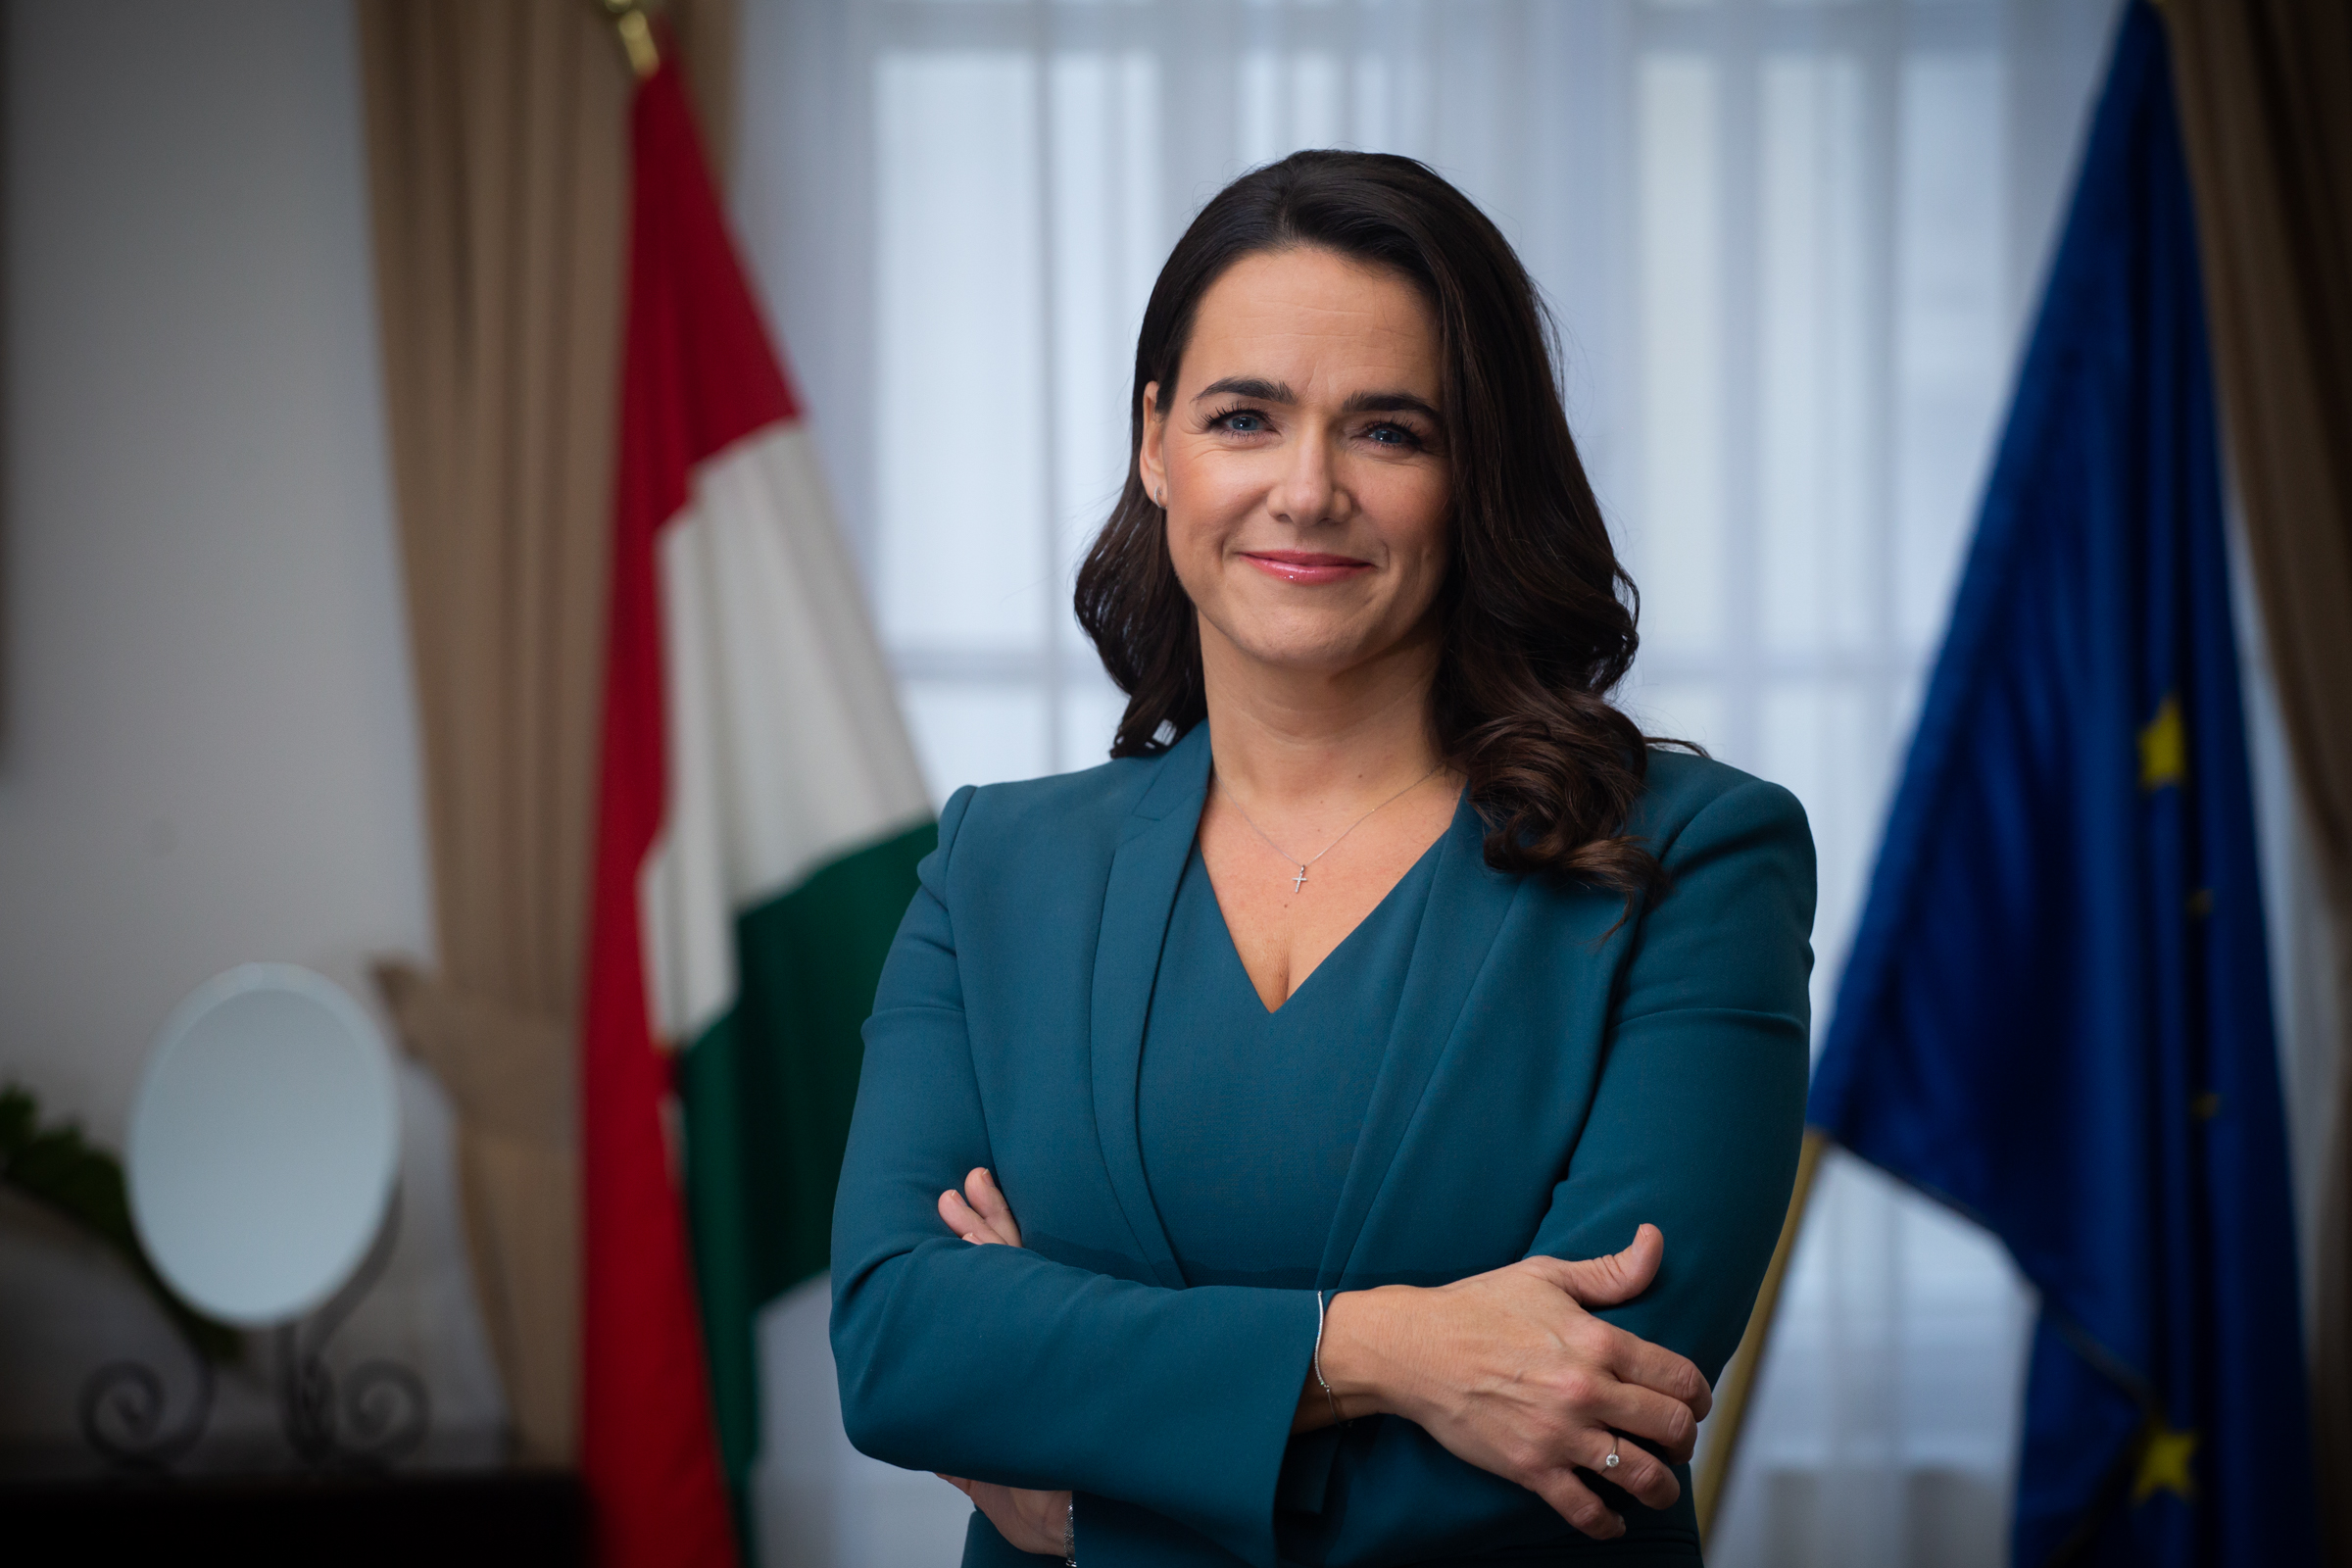 Hungarian Families in Focus - Interview with Katalin Novák, Minister for Families